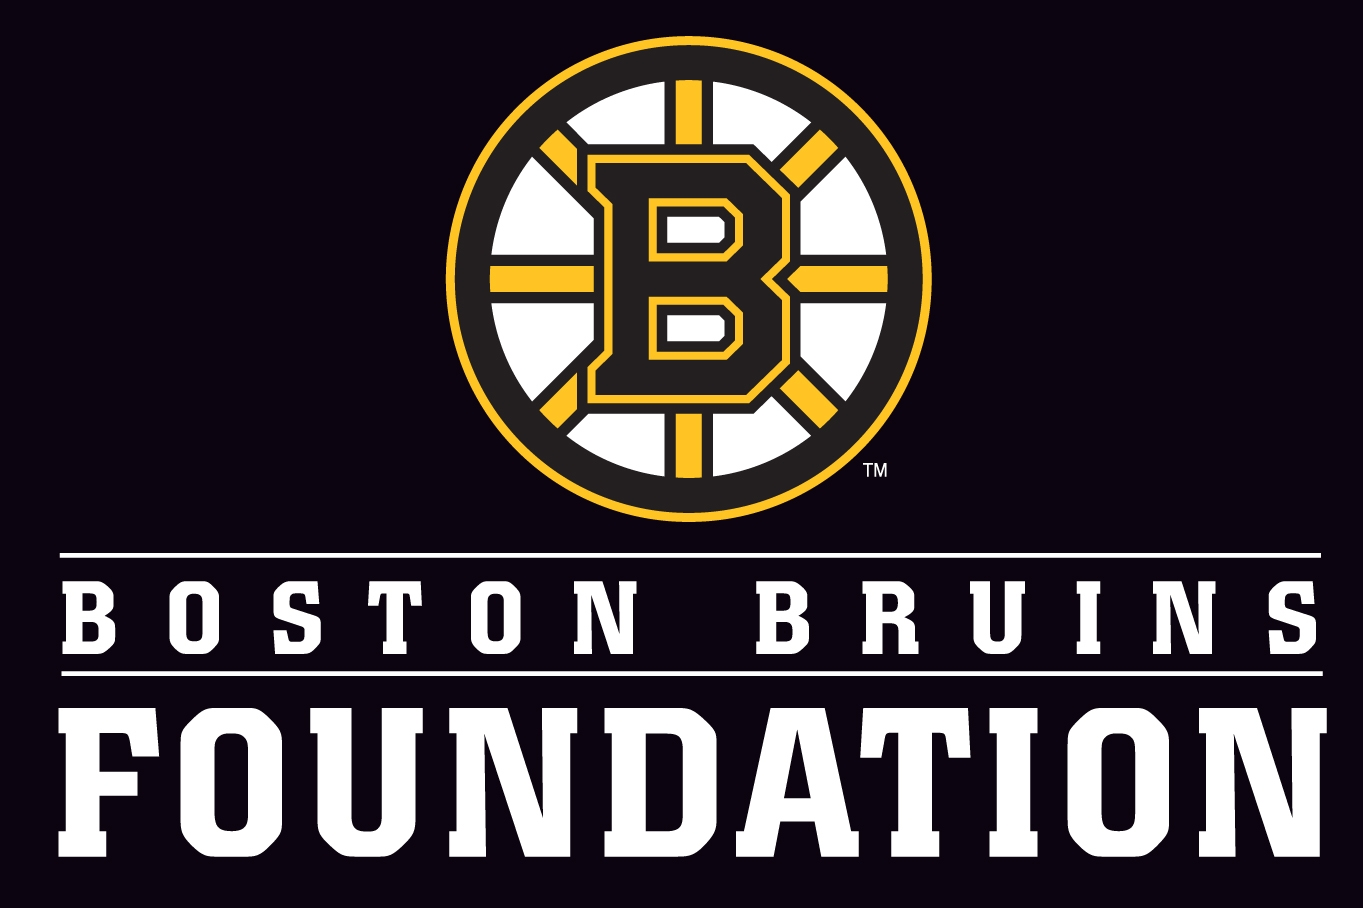 265 things to do in Boston bruins foundation